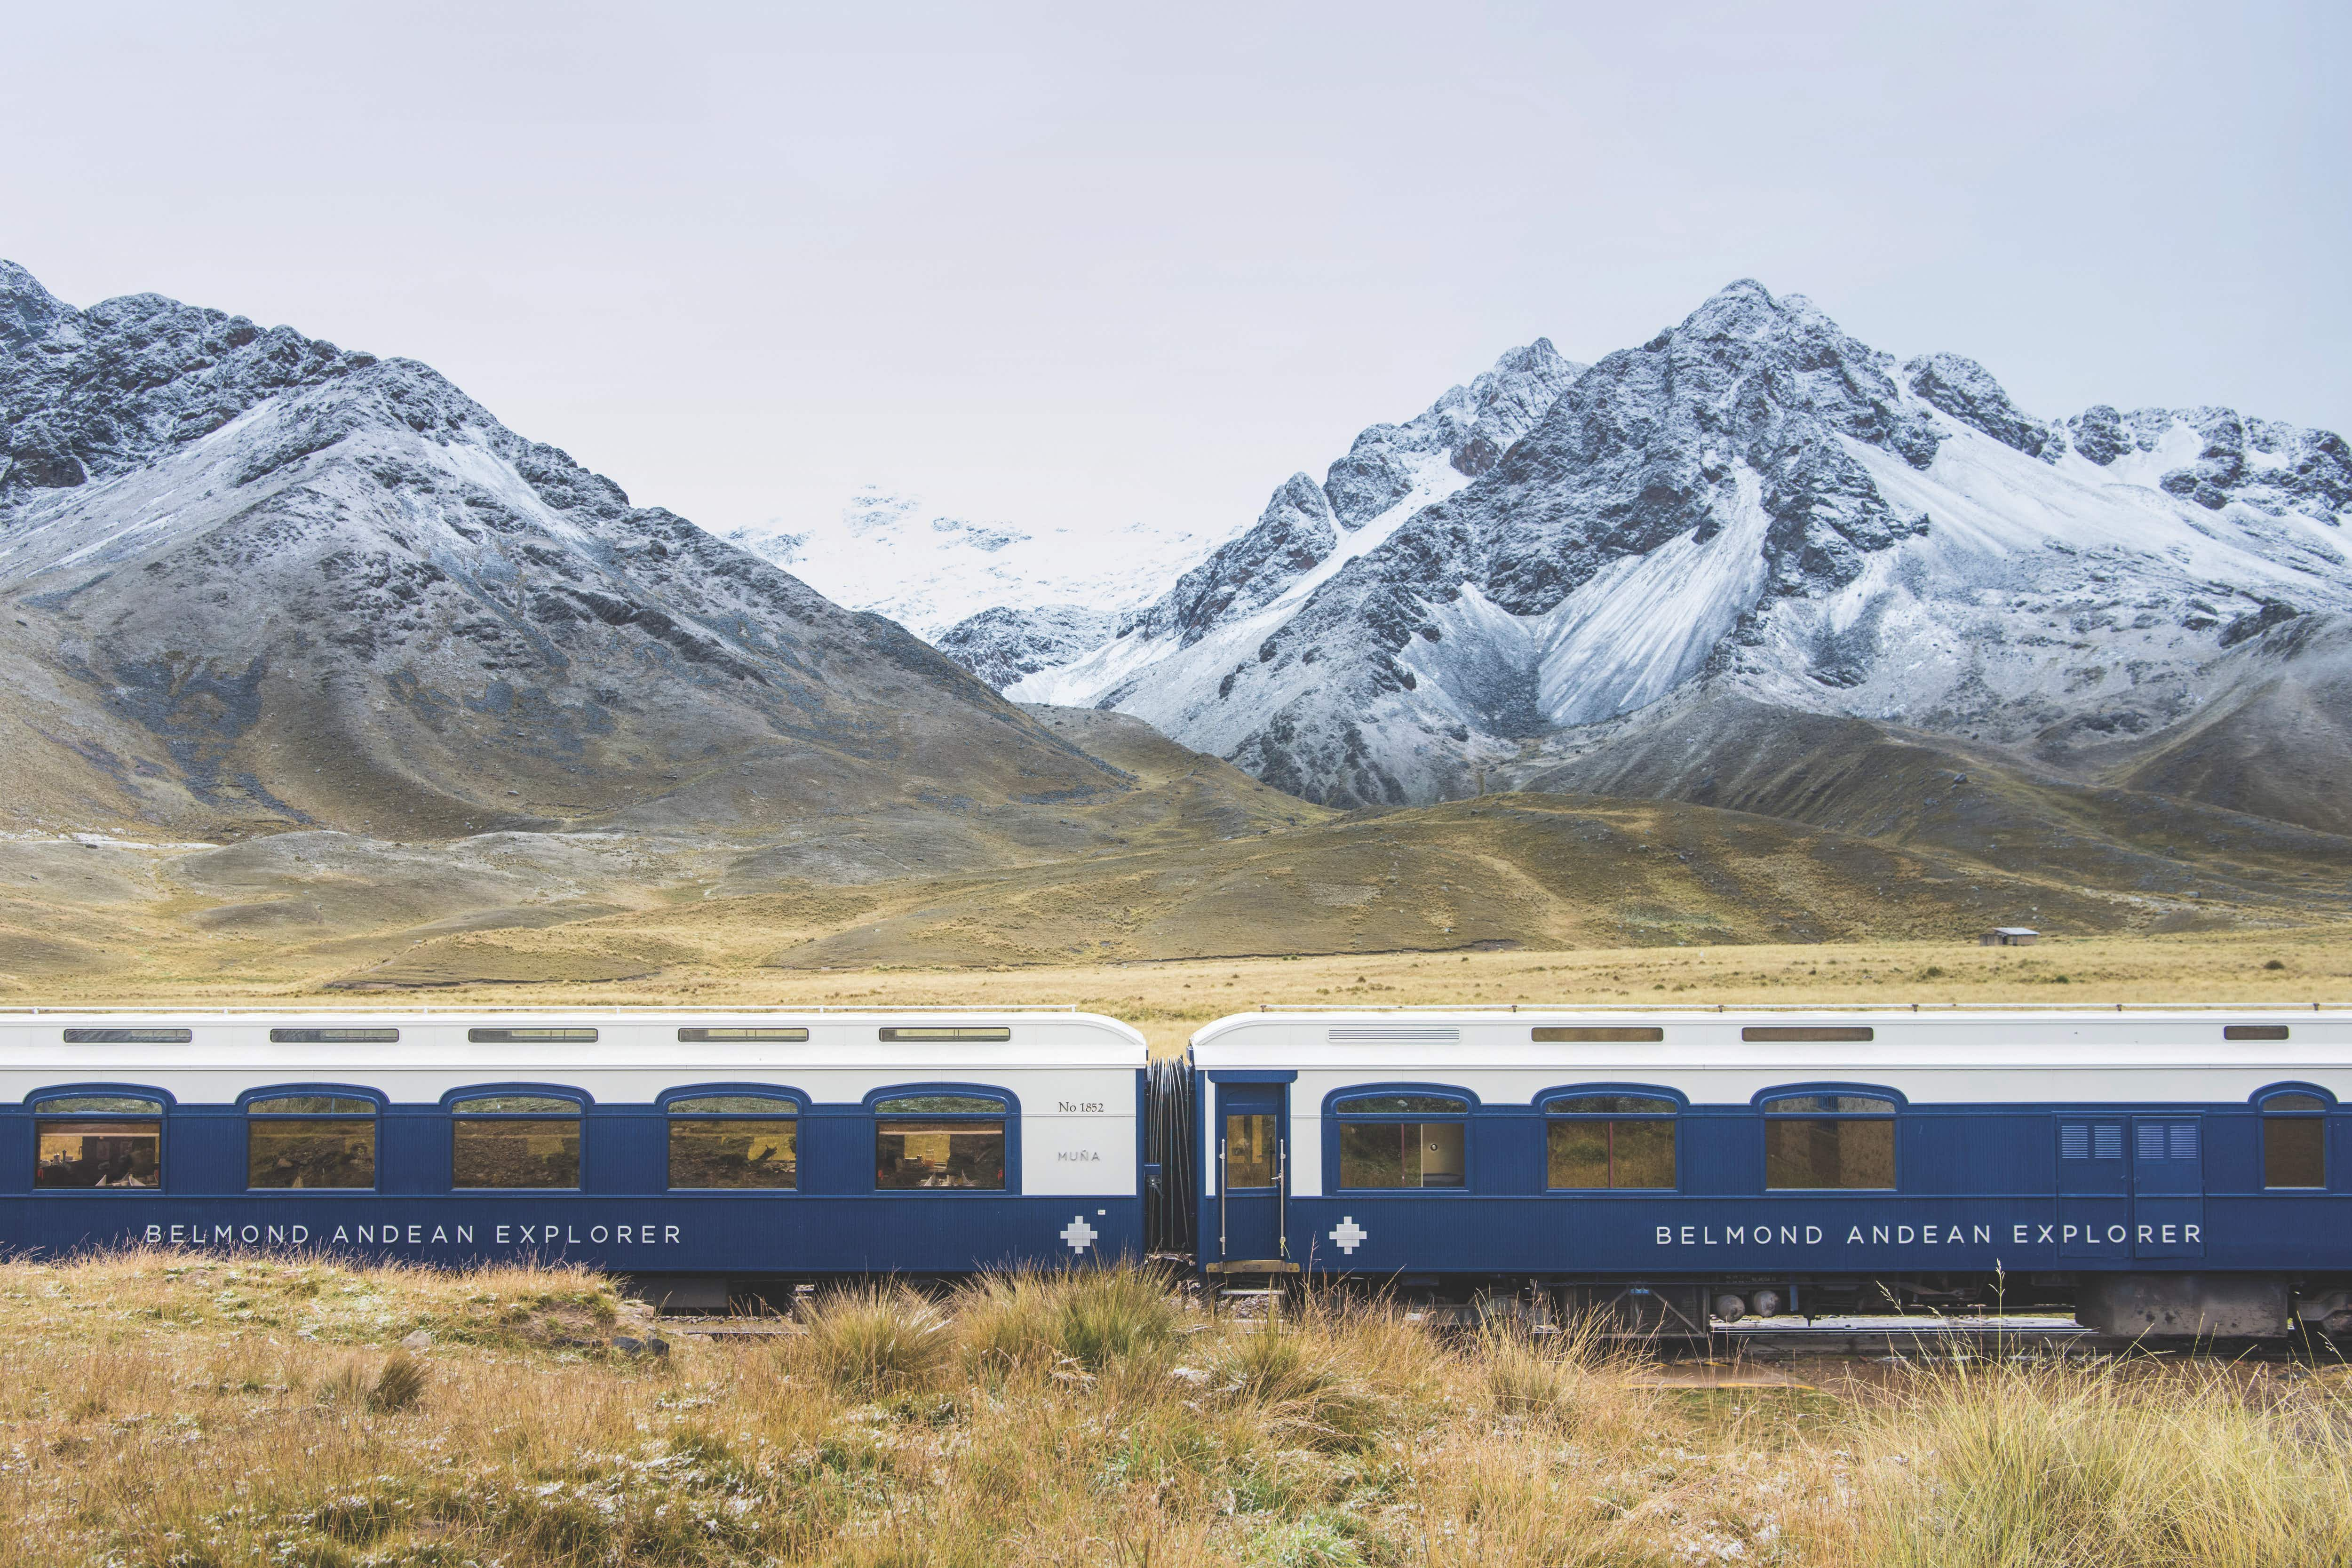 Peru's new luxury sleeper train is taking travellers on journeys through the Andes